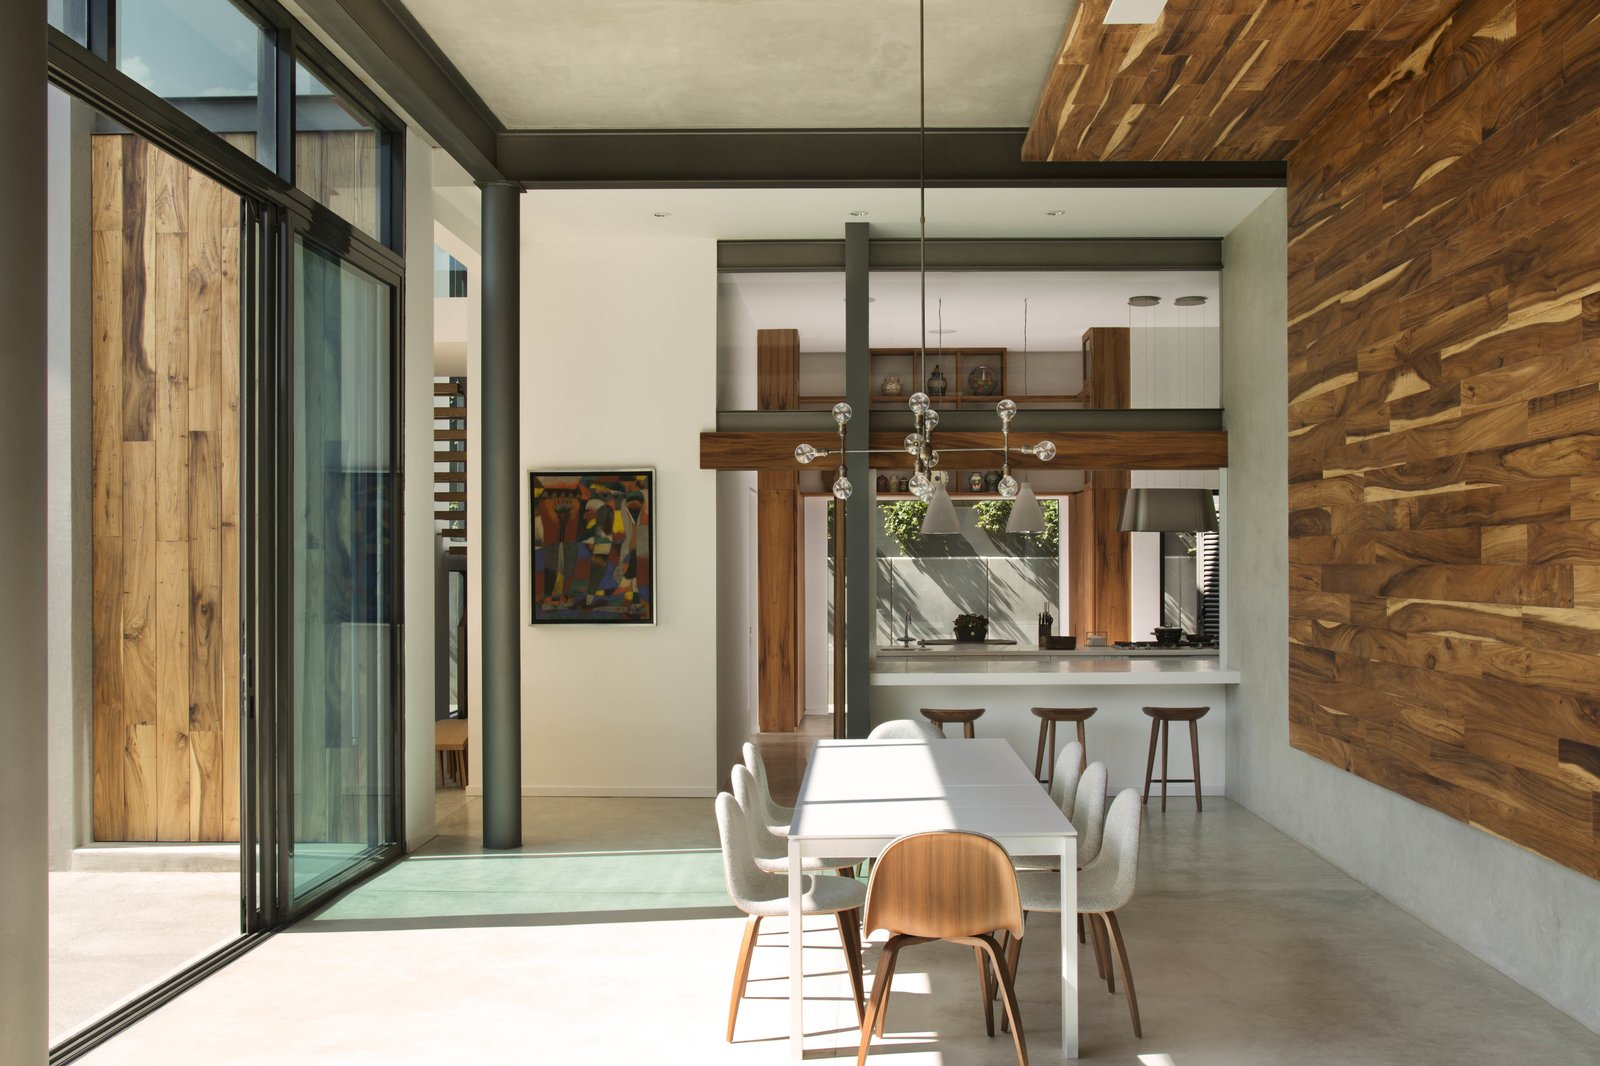 The dining room features Design Within Reach chairs, a Ligne Roset table, and a chandelier from Apparatus.  Modern Open-Plan Retreat in Mexico City by Monique Valeris from Eight Daring Designs in Mexico City